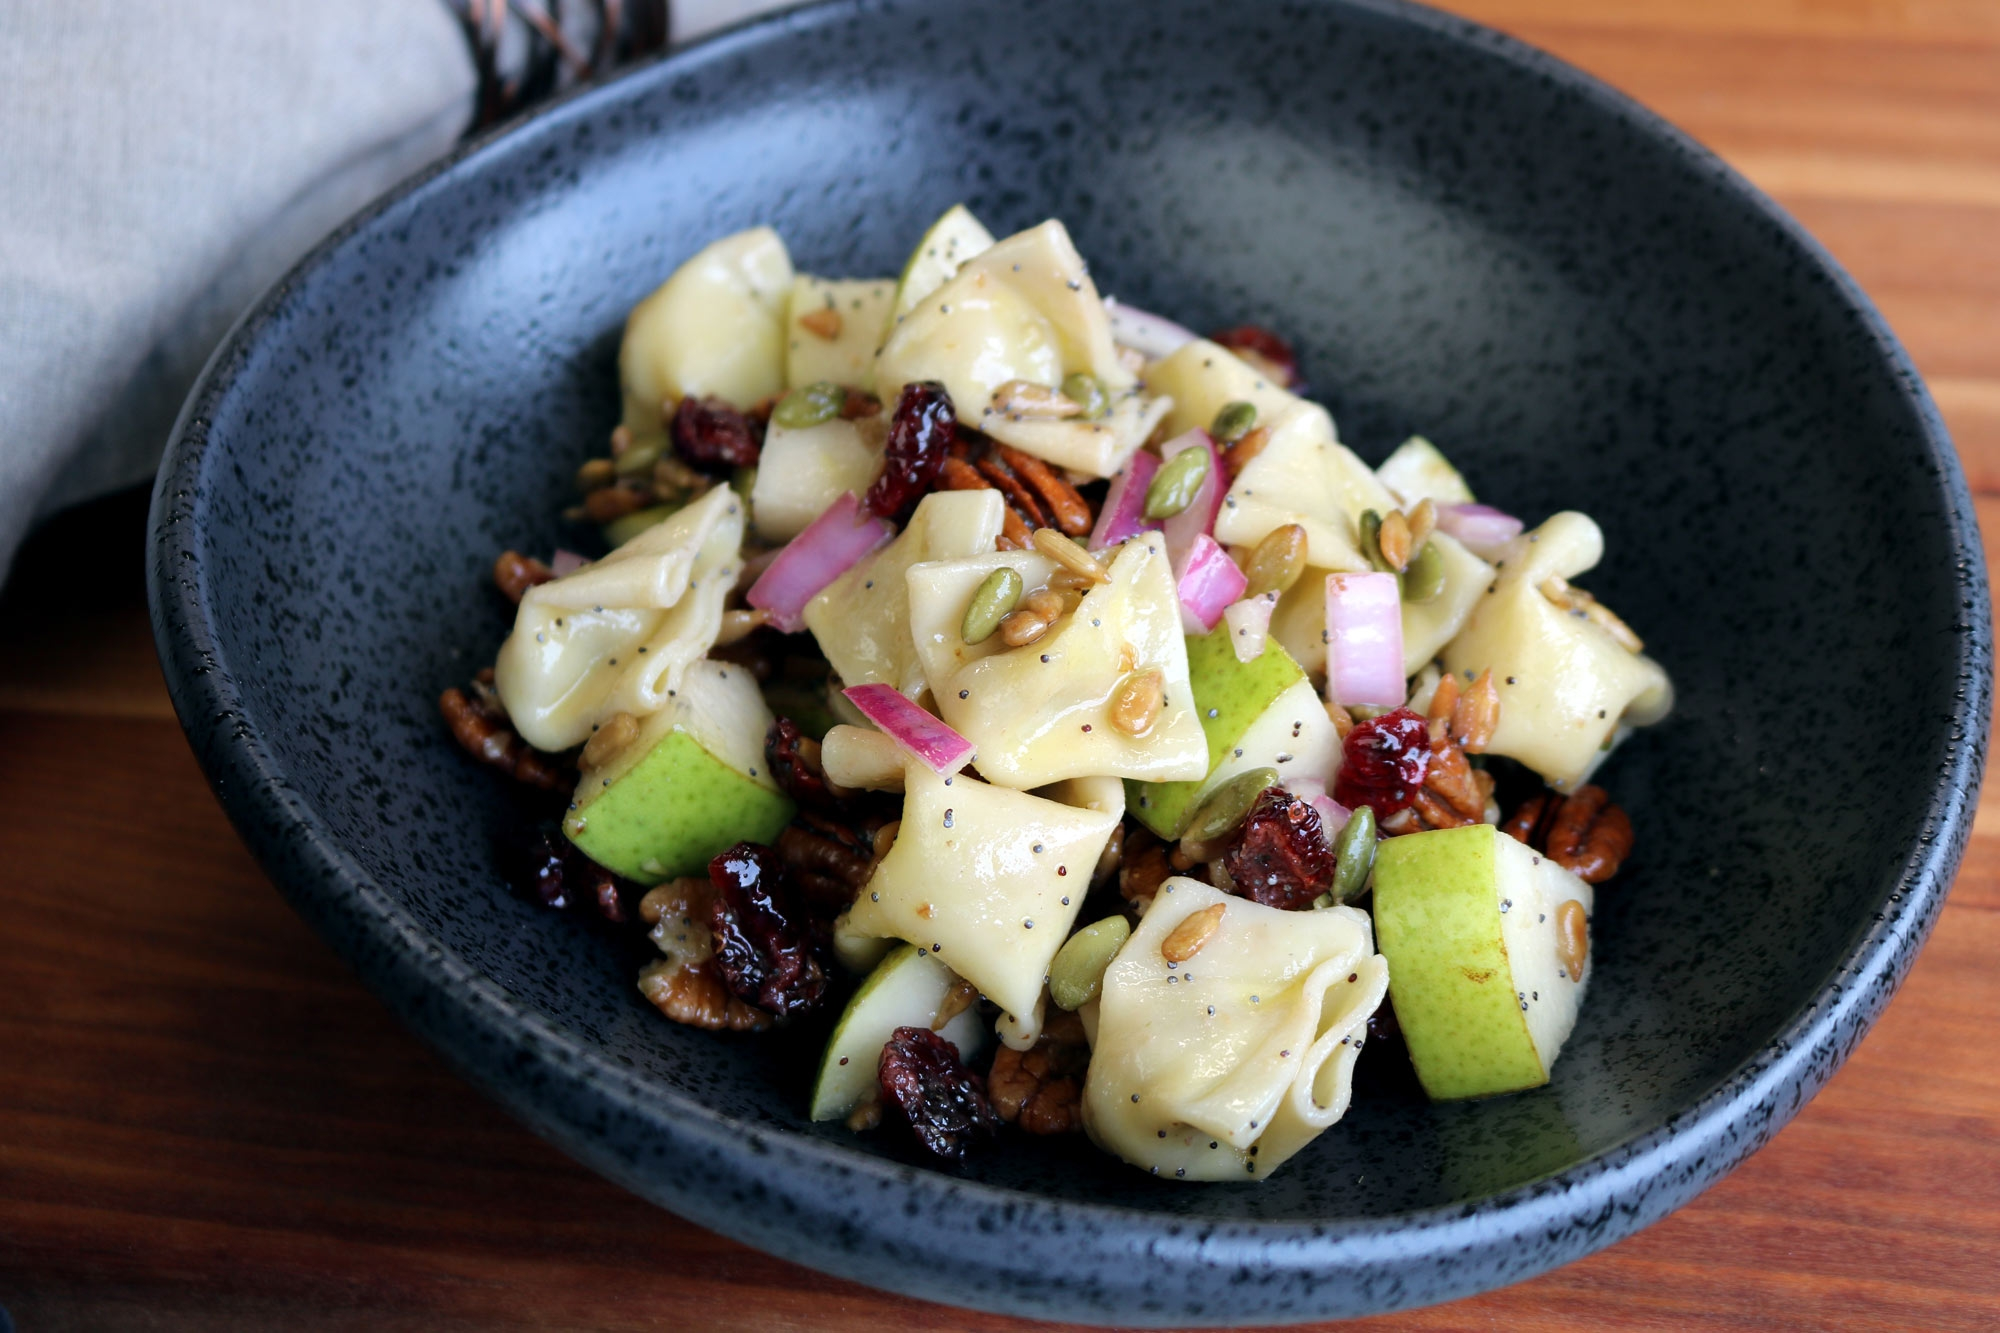 Carla's Pasta Recipe for Warm Harvest Pear and Gorgonzola Salad